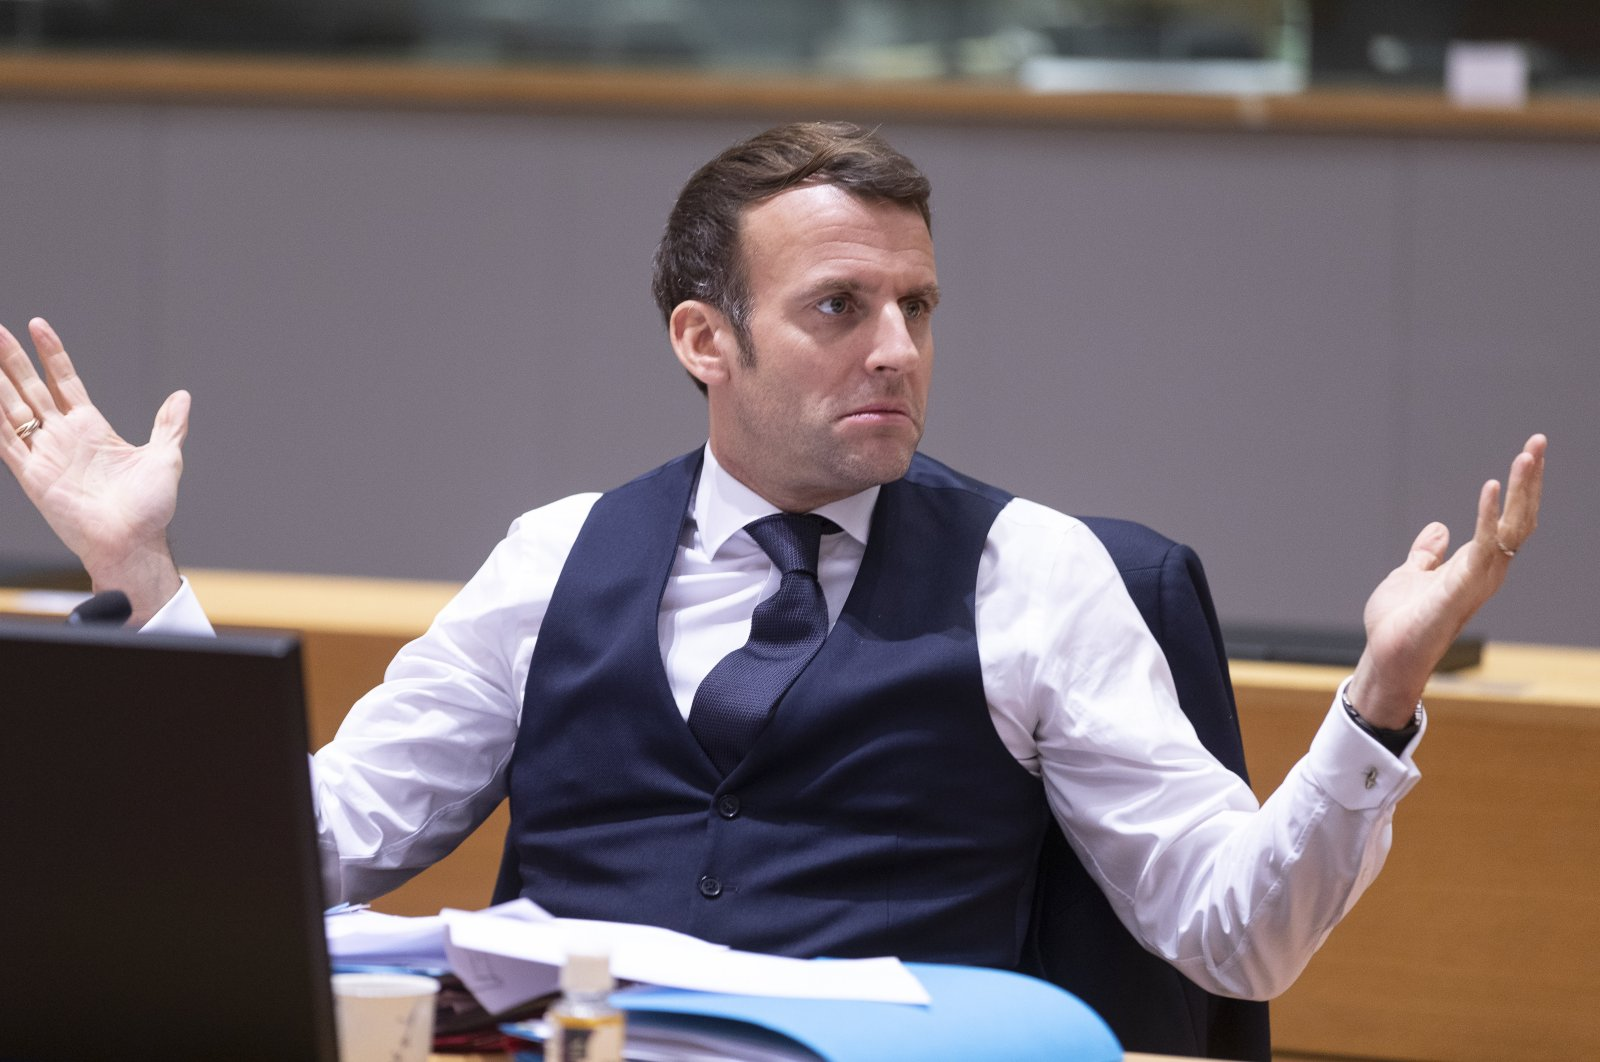 French President Emmanuel Macron gestures during second day of European Council meeting, Dec. 11, 2020. (AA Photo)